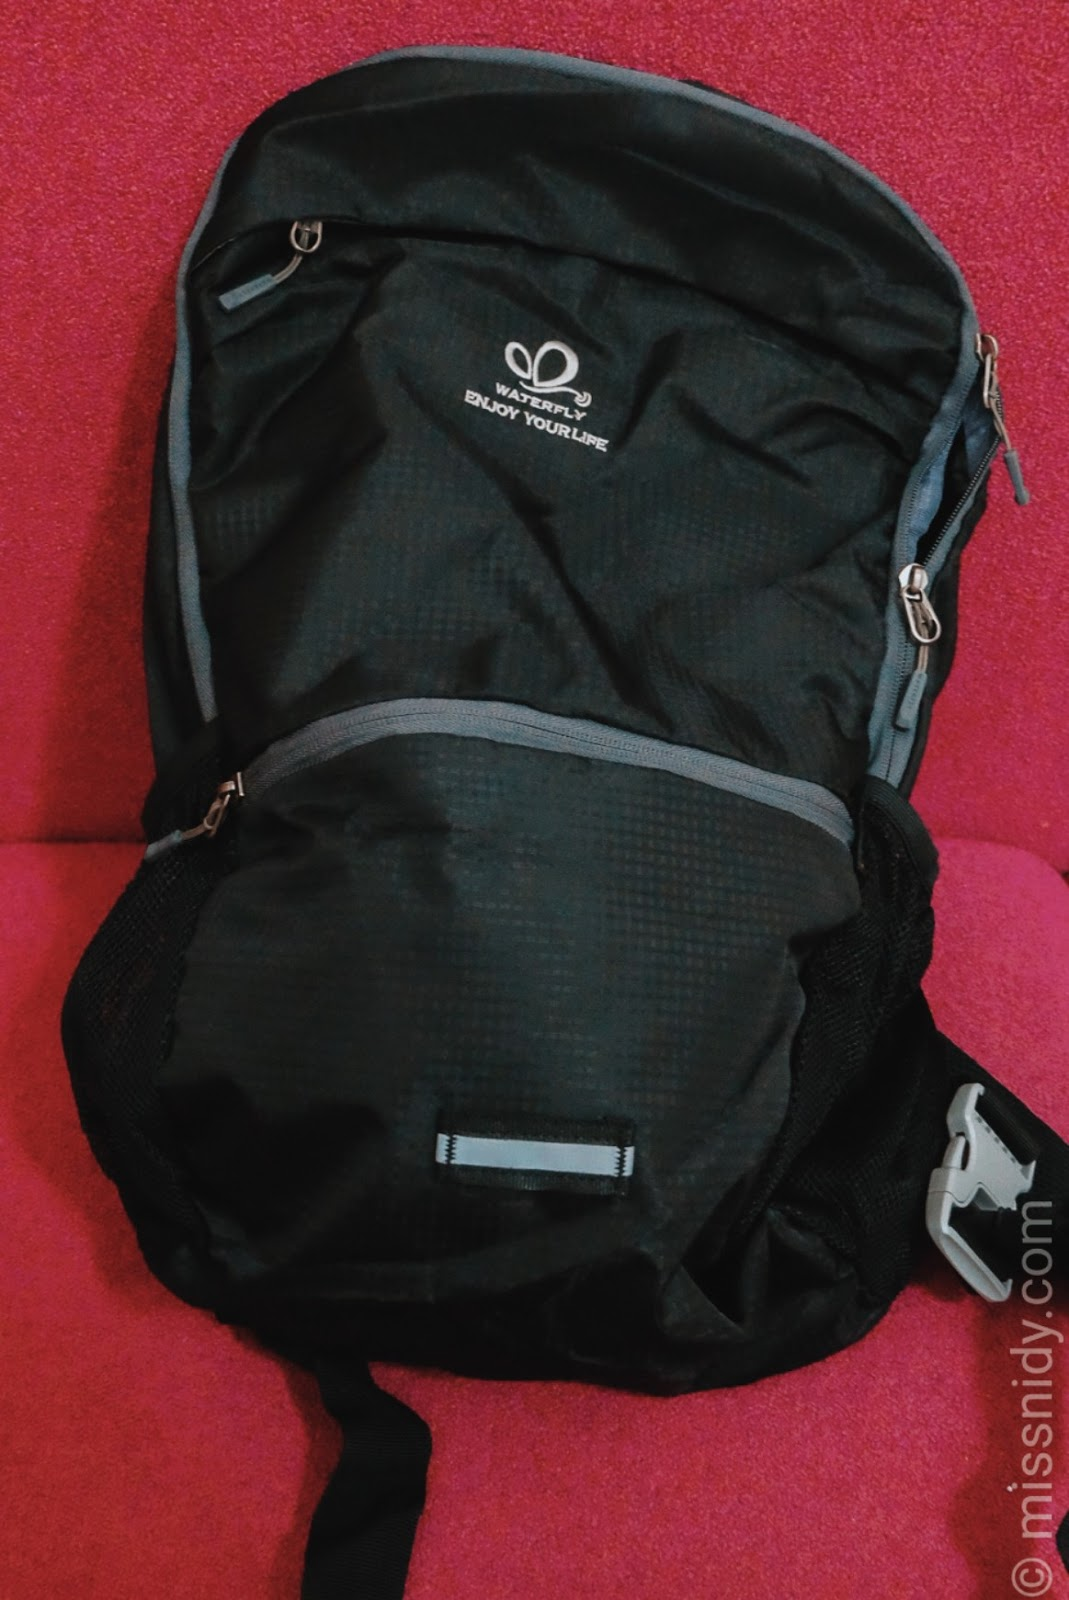 waterfly 3 in 1 multi0function backpack review indonesia